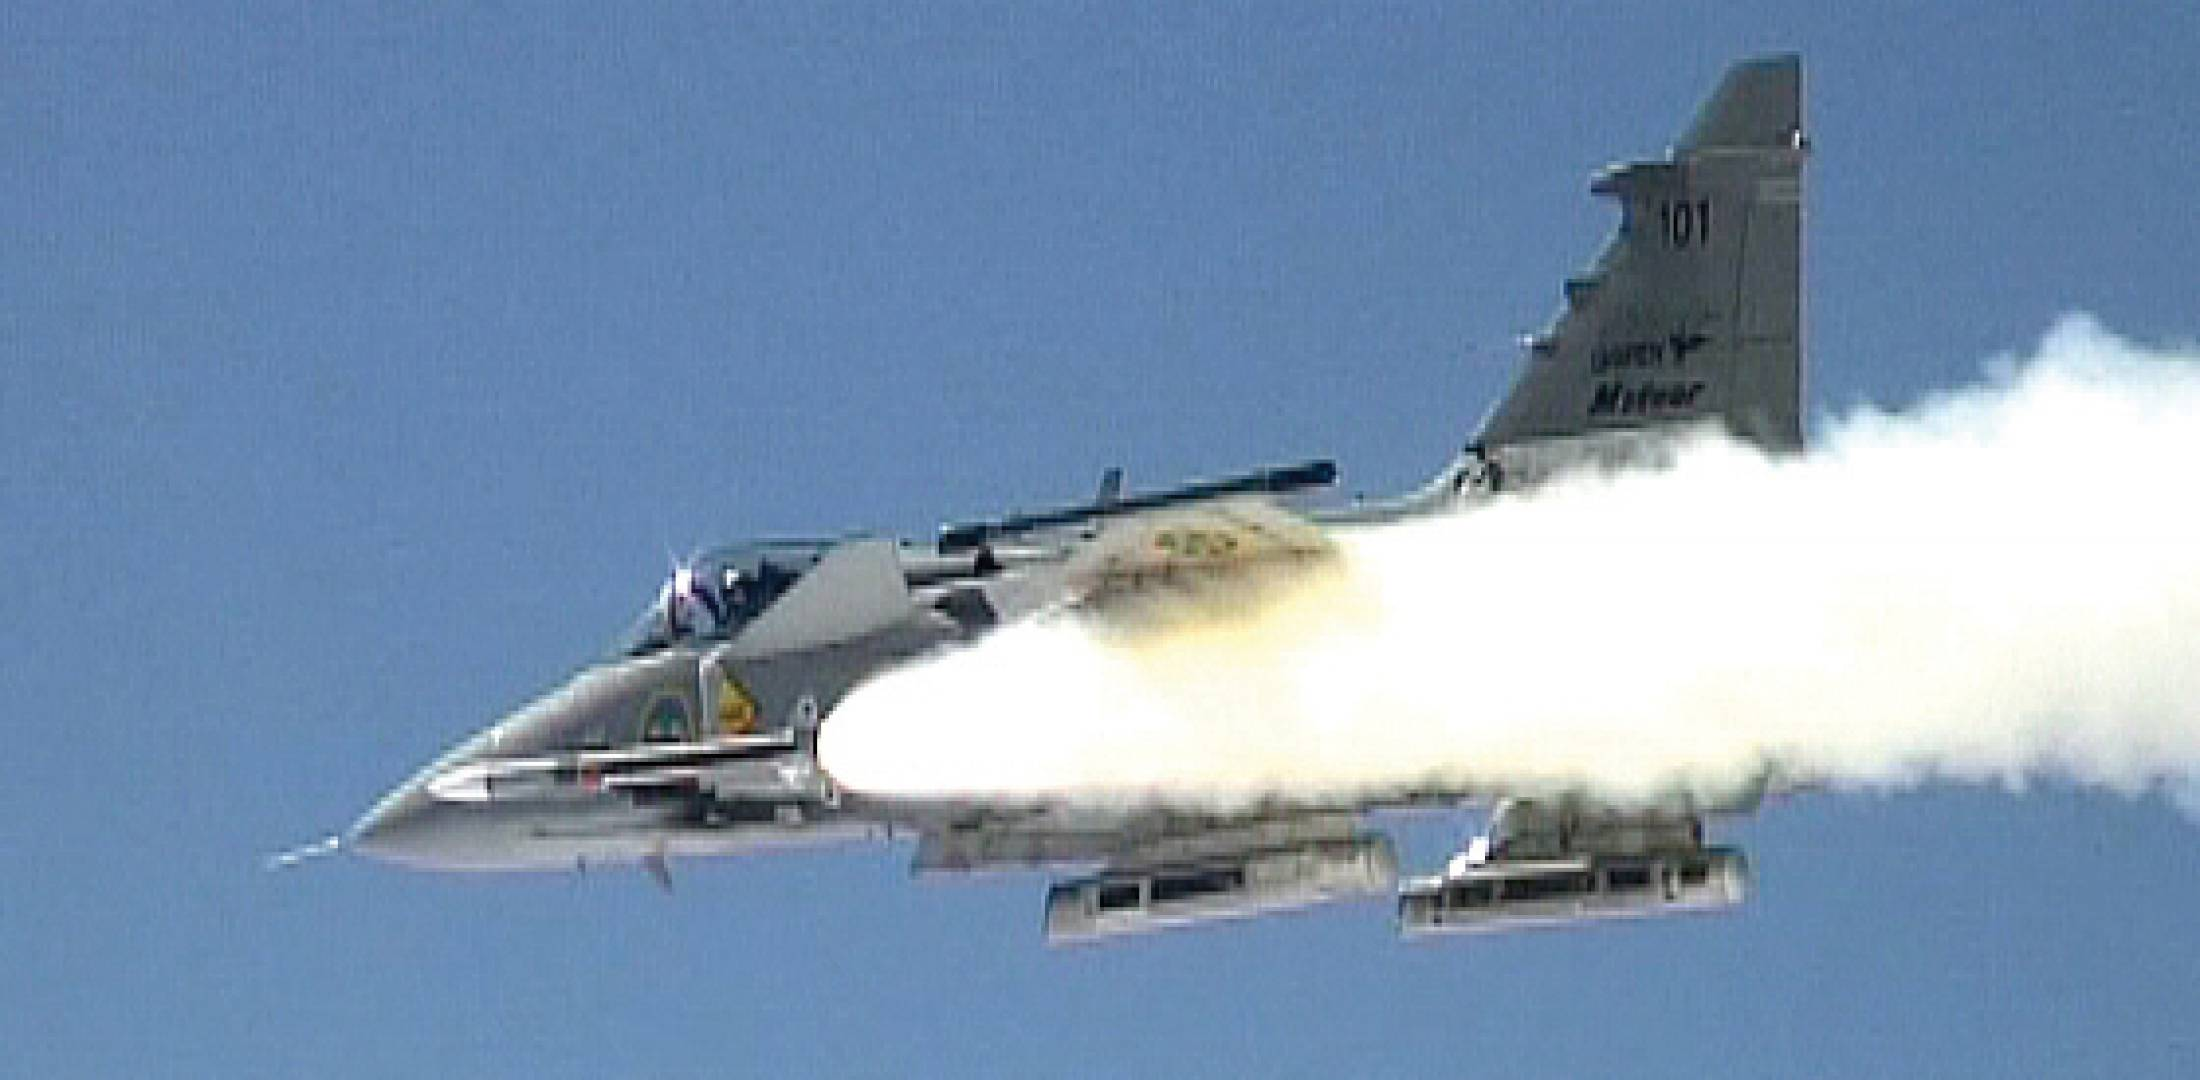 The Saab Gripen did the first eight development firings of the MBDA Meteor BVRAAM. The European missile house chose the Swedish fighter in preference to the Rafale or the Eurofighter, but the Meteor has since been integrated on all three aircraft.